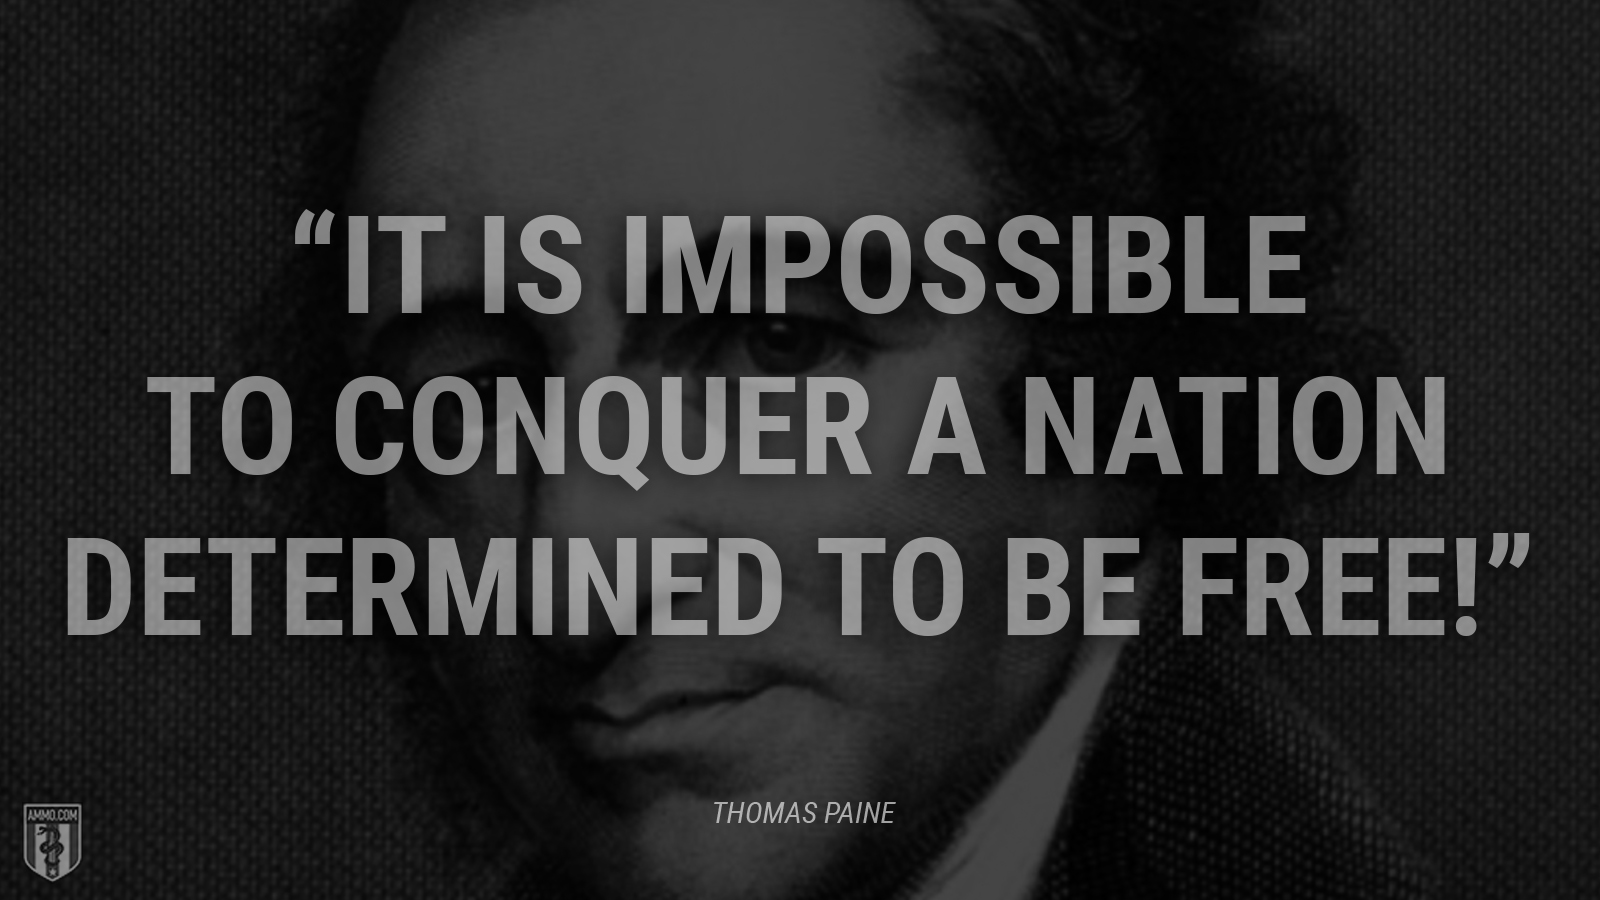 """It is impossible to conquer a nation determined to be free!"" - Thomas Paine"